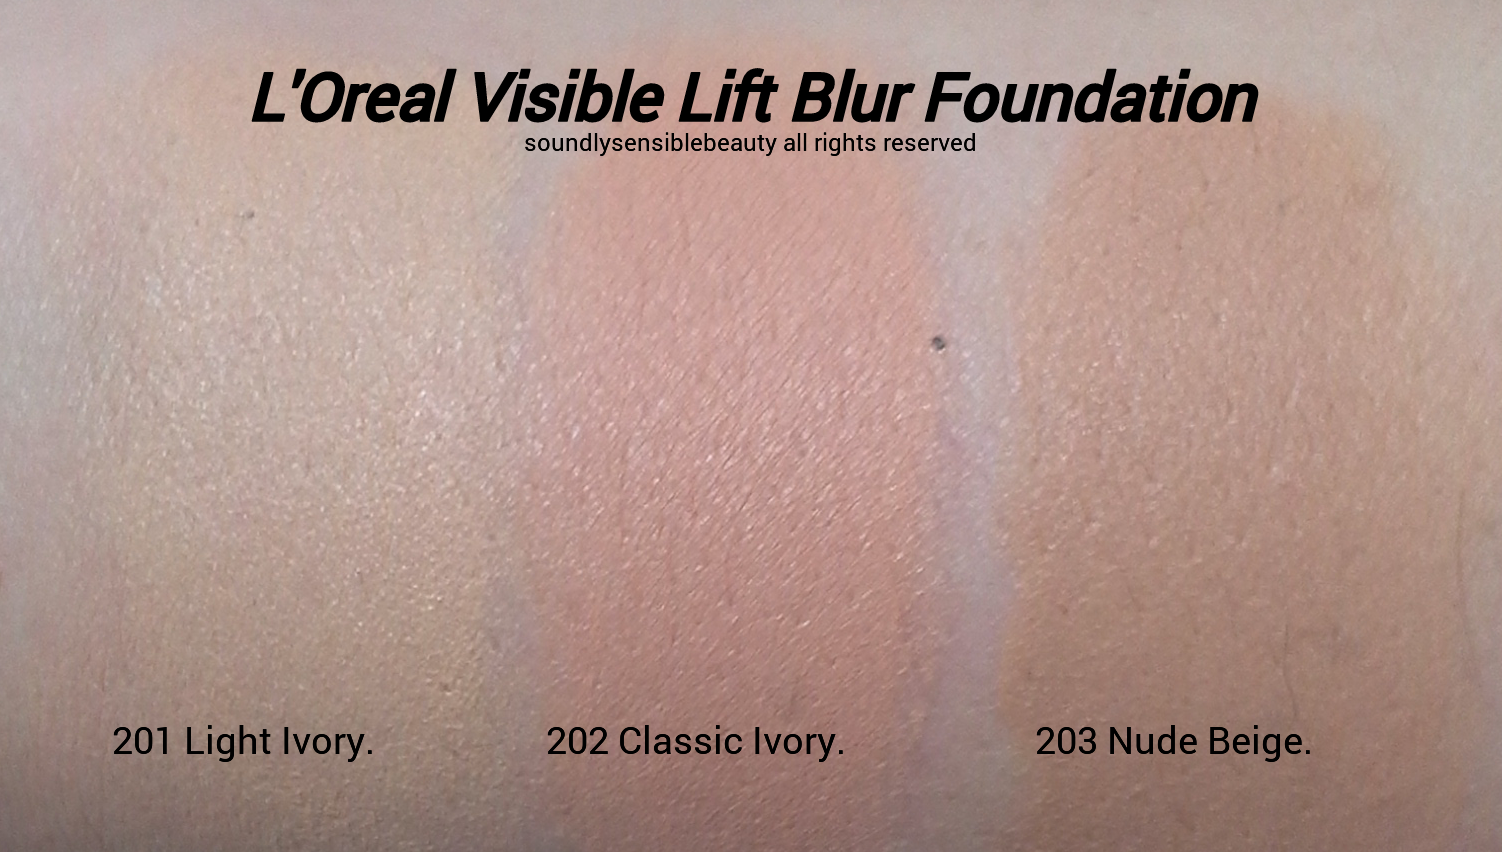 L'Oreal Visible Lift Blur Foundation SPF 25 Review & Swatches of Shades: 201 Light Ivory, 202 Classic Ivory, 203 Nude Beige